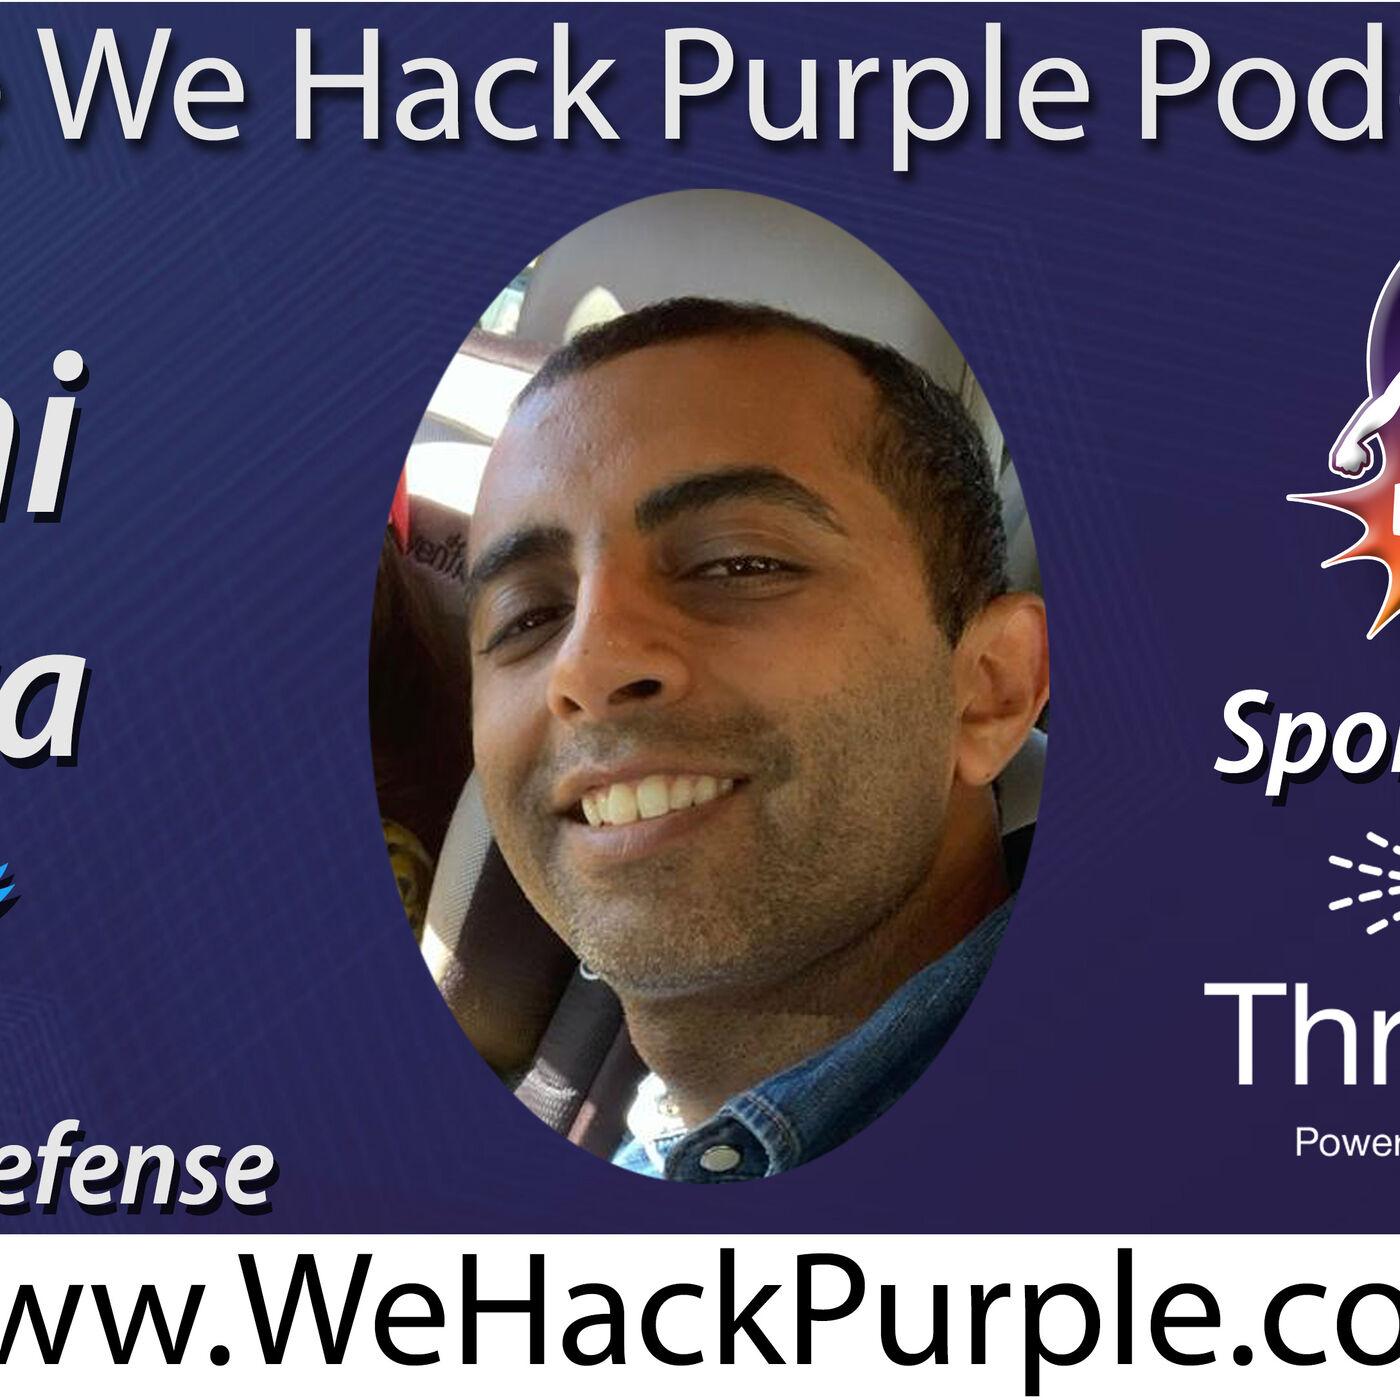 We Hack Purple Podcast Episode 36 with Guest Abhi Arora